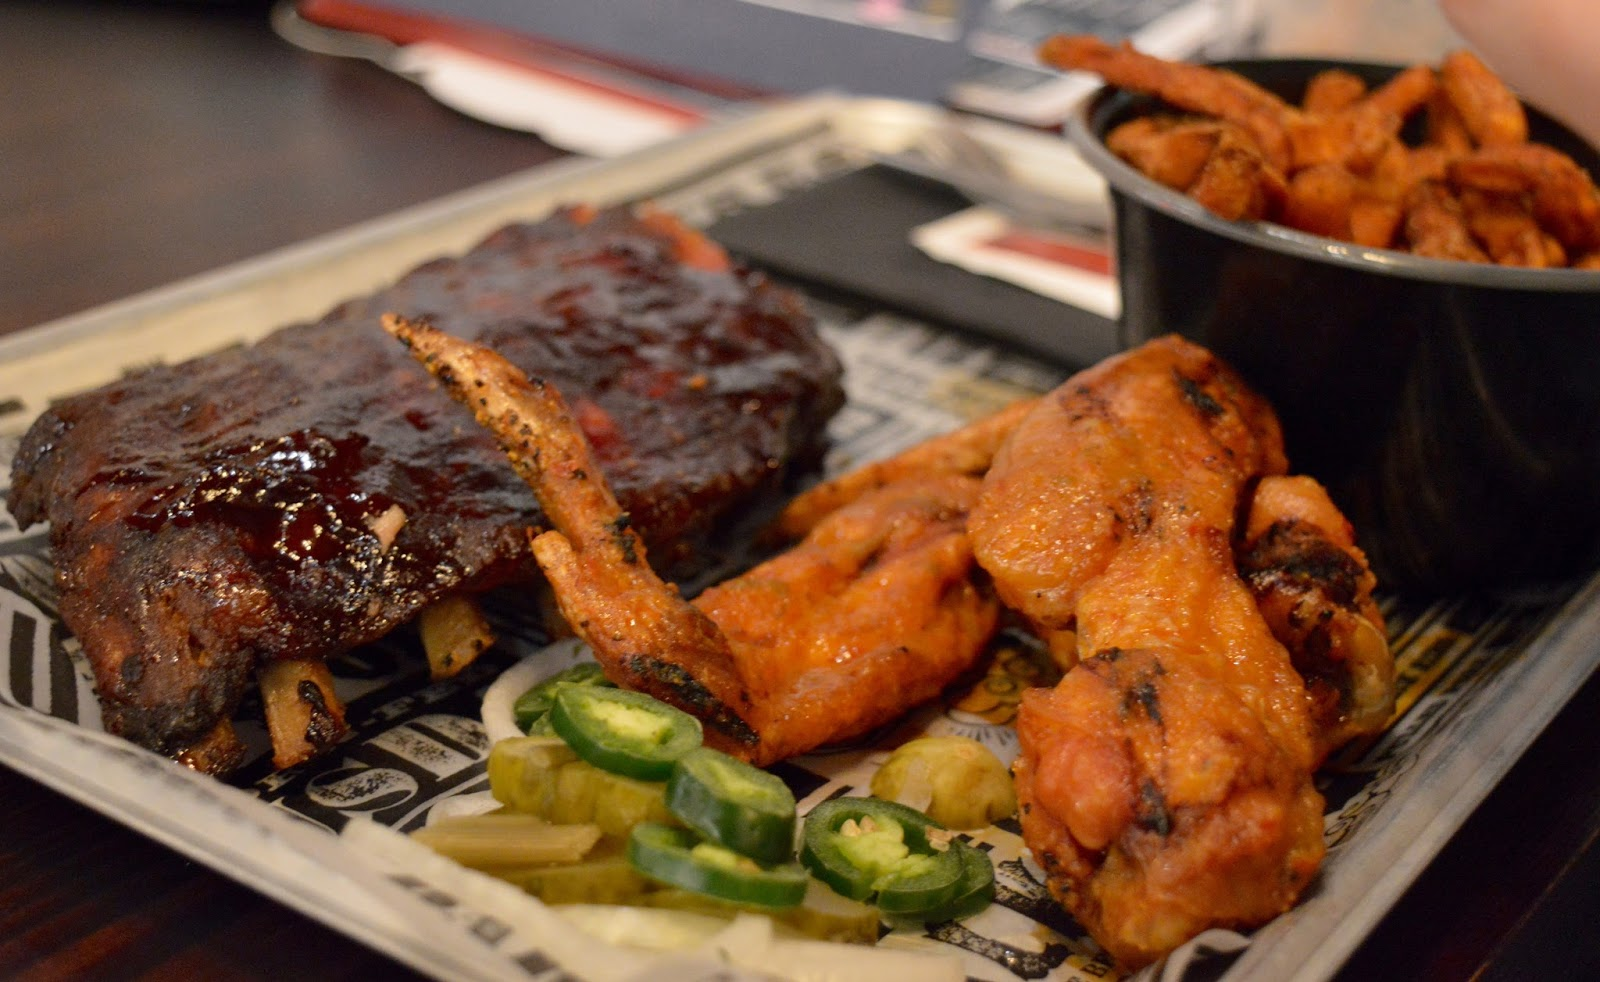 Red's True BBQ Newcastle | Menu Review (including Children's Menu) - ribs and wings